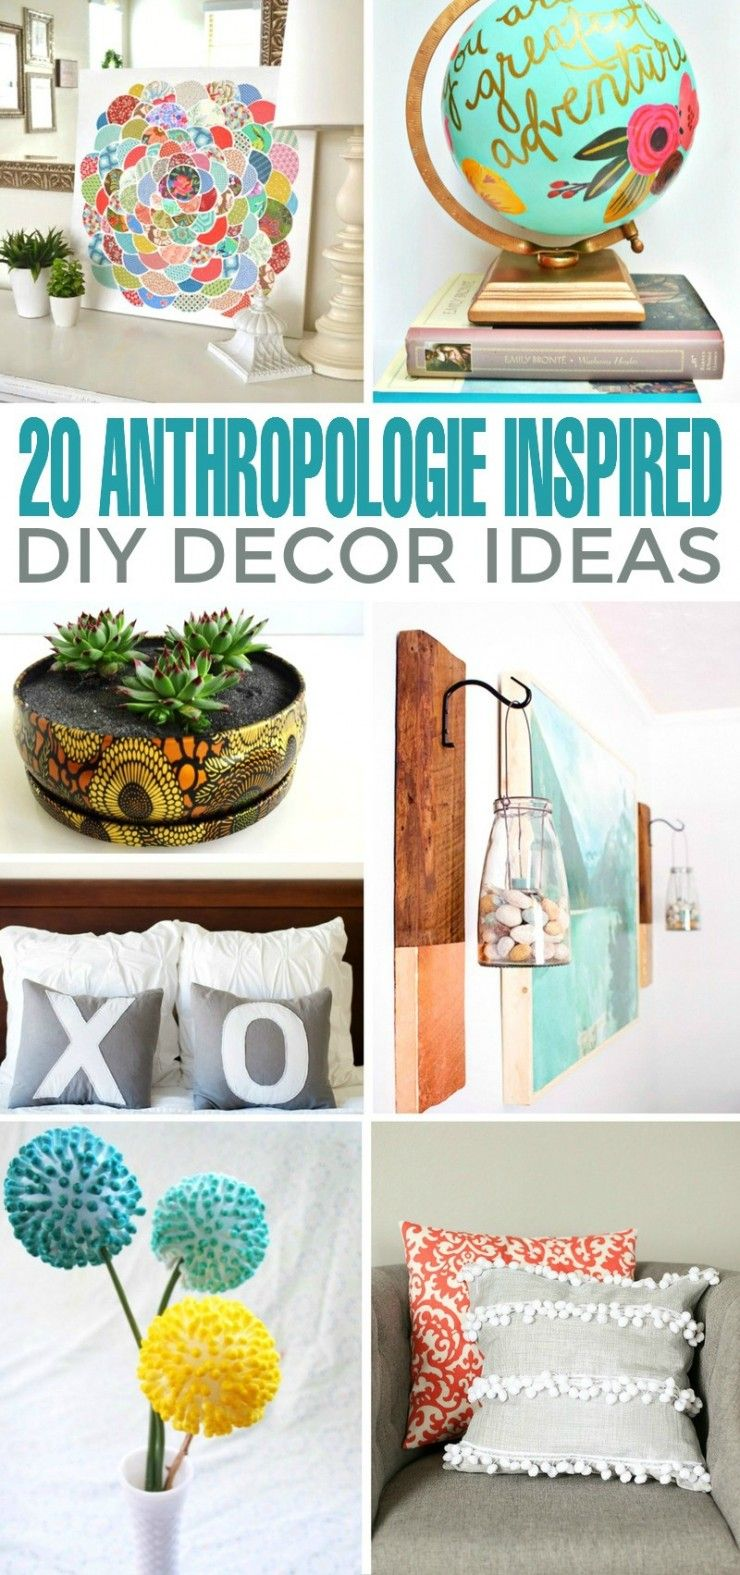 Whether you're in the market for new throw pillows or for a wreath to spice up your home décor, these 20 DIY Anthropologie inspired DIY Decor Ideas will give your space the makeover you've been looking for.